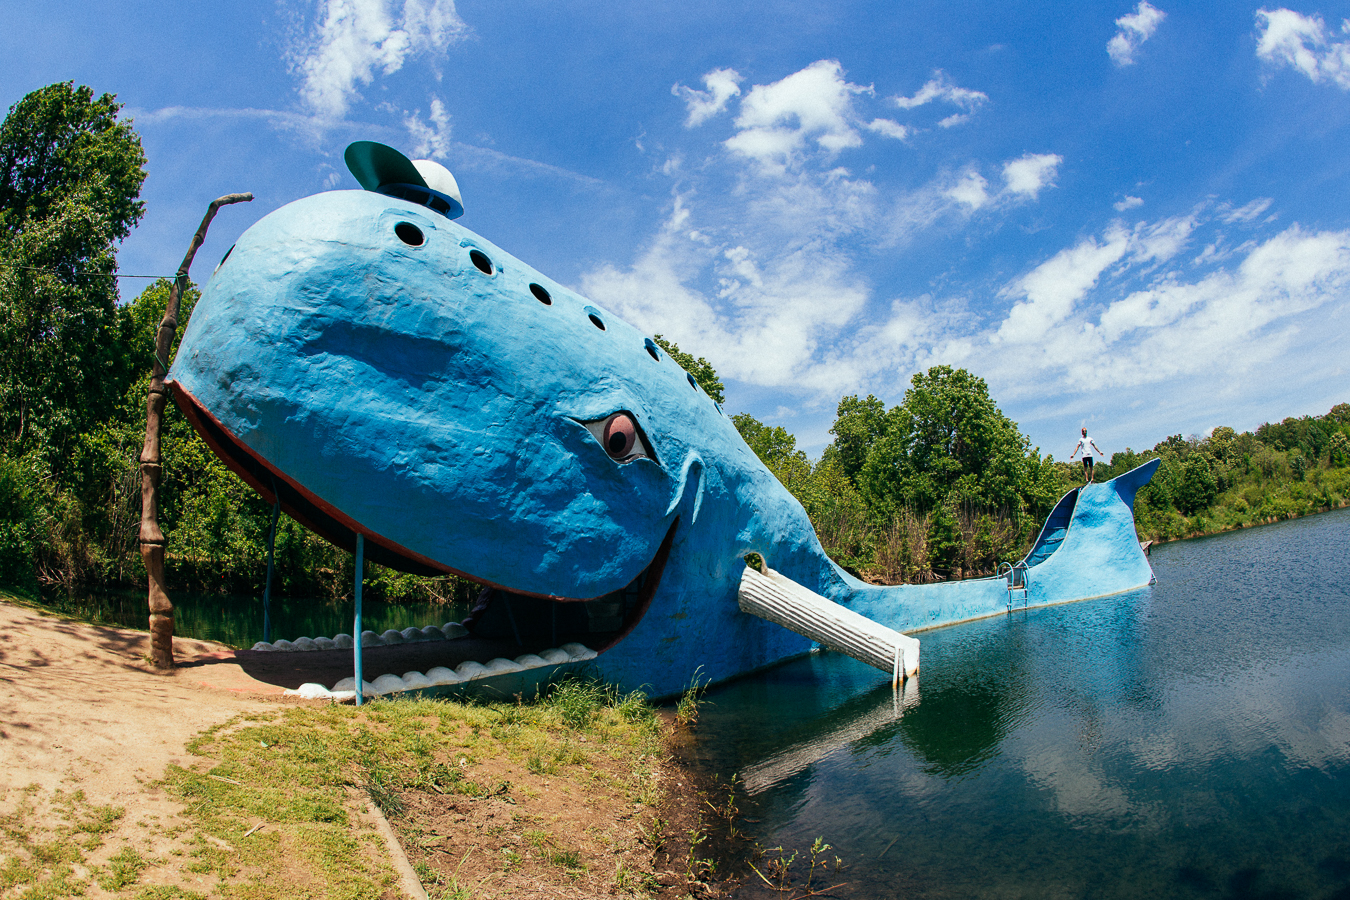 The Blue Whale of Catoosa. Once upon a time this used to be a popular swimming hole,you could slide down it's fins or dive off the tail.